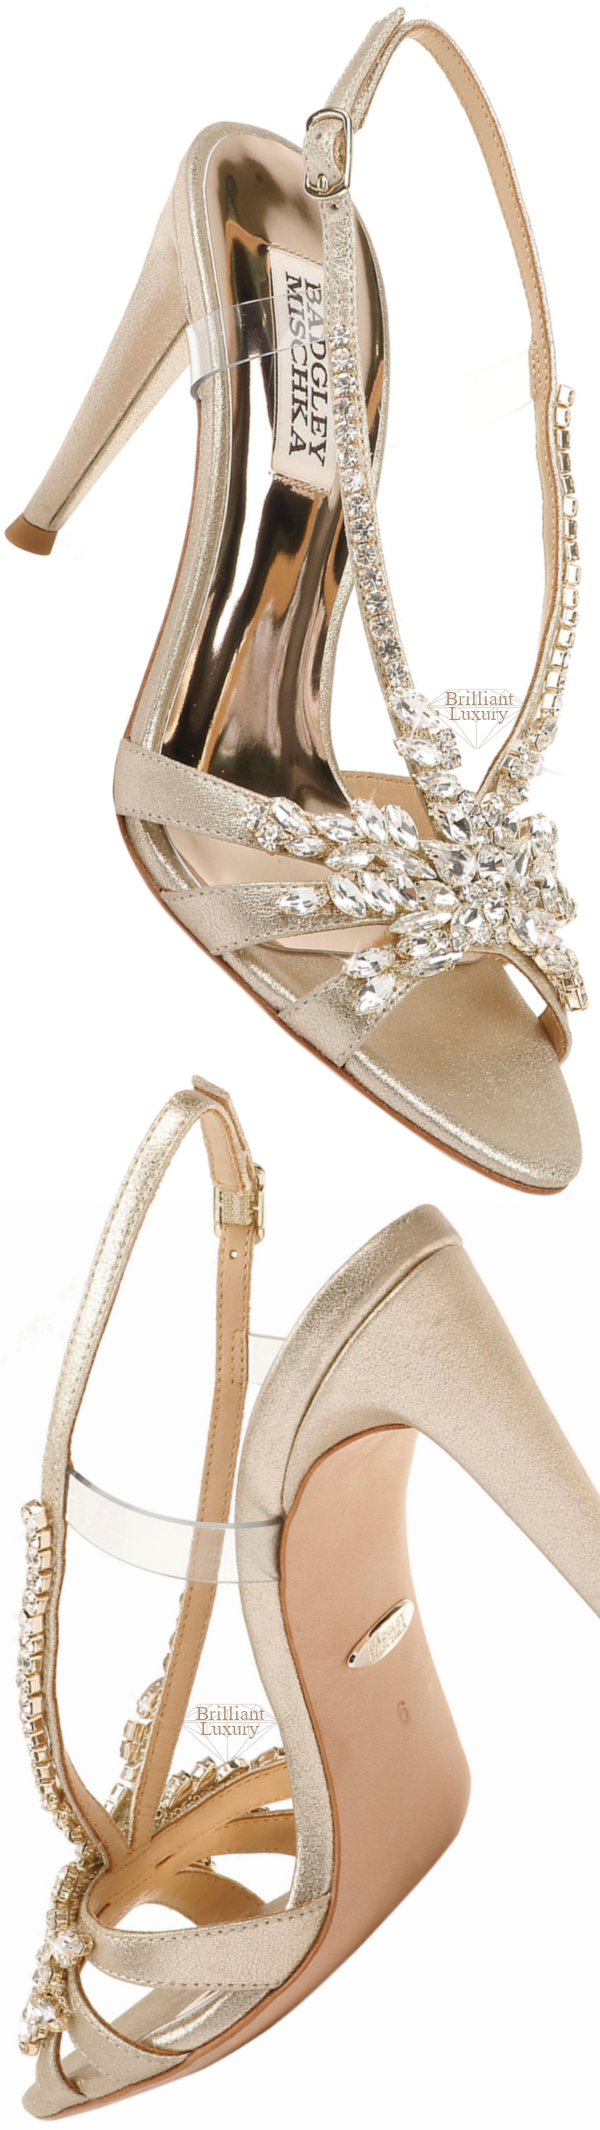 Shoe Collection Spring 2020 Badgley Mischka Jacqueline II Sandals